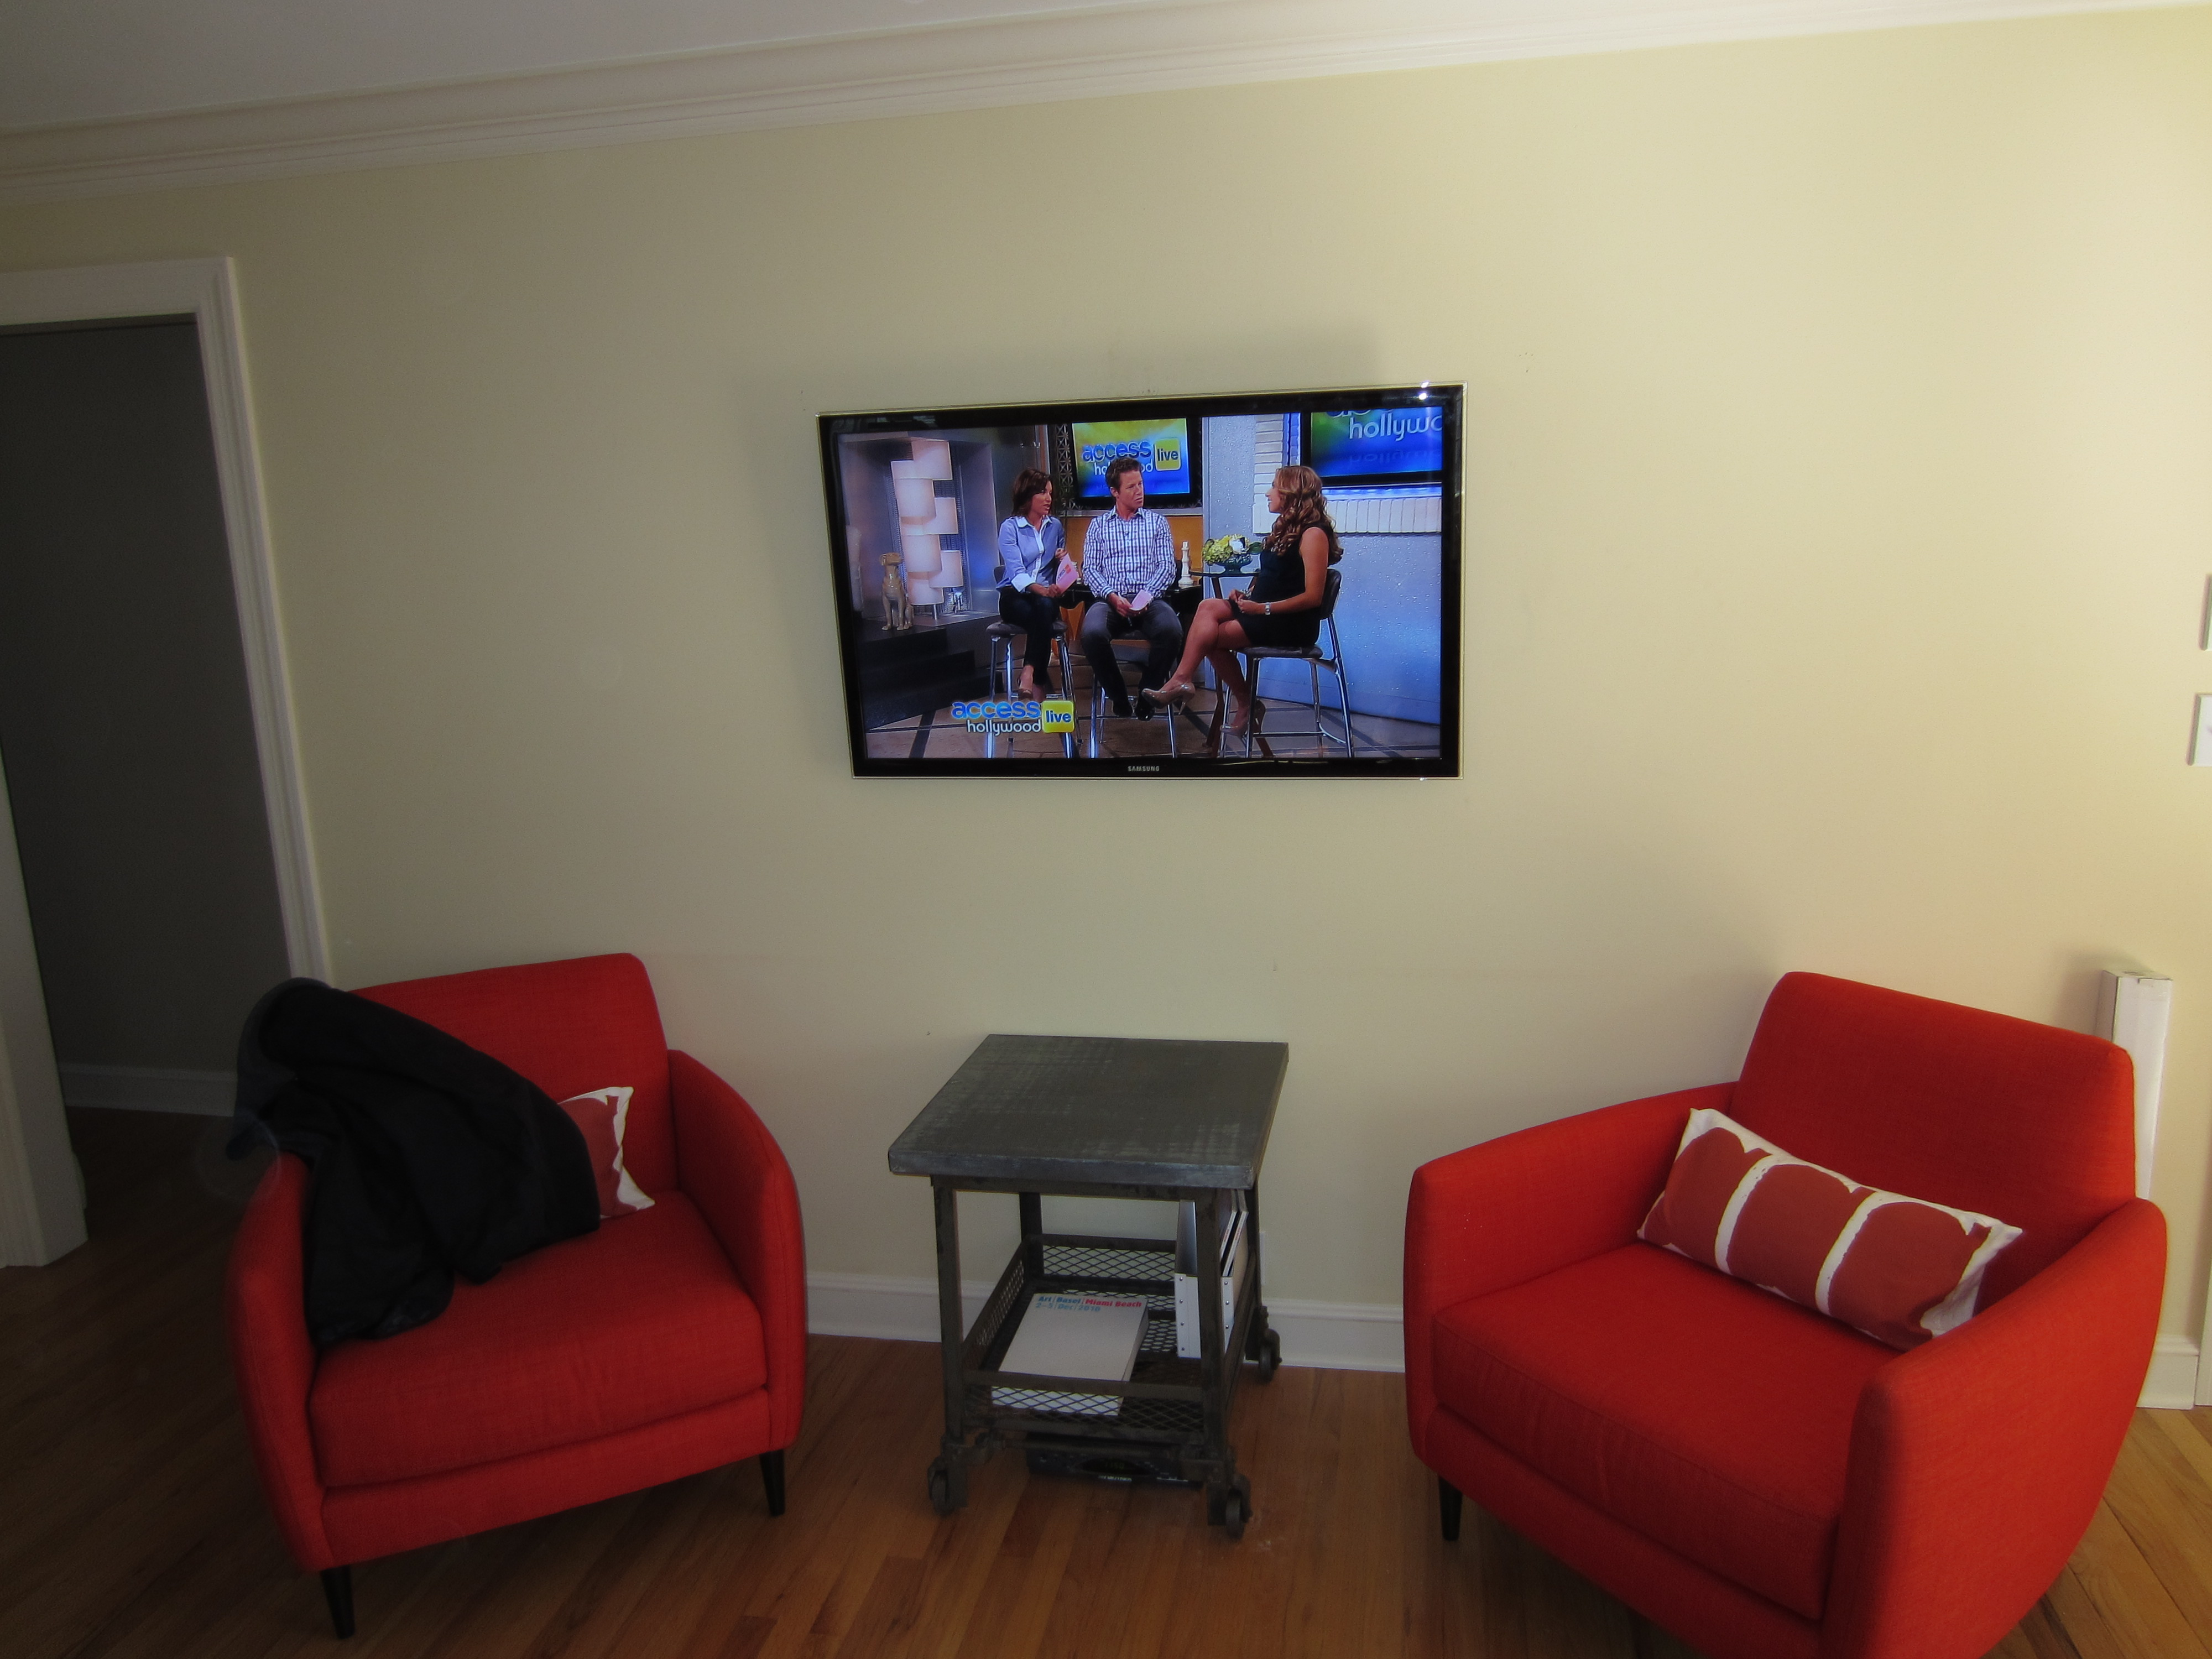 How To Put A Tv On A Wall Fairfield Ct Tv Install On Wall Hiding All Wires